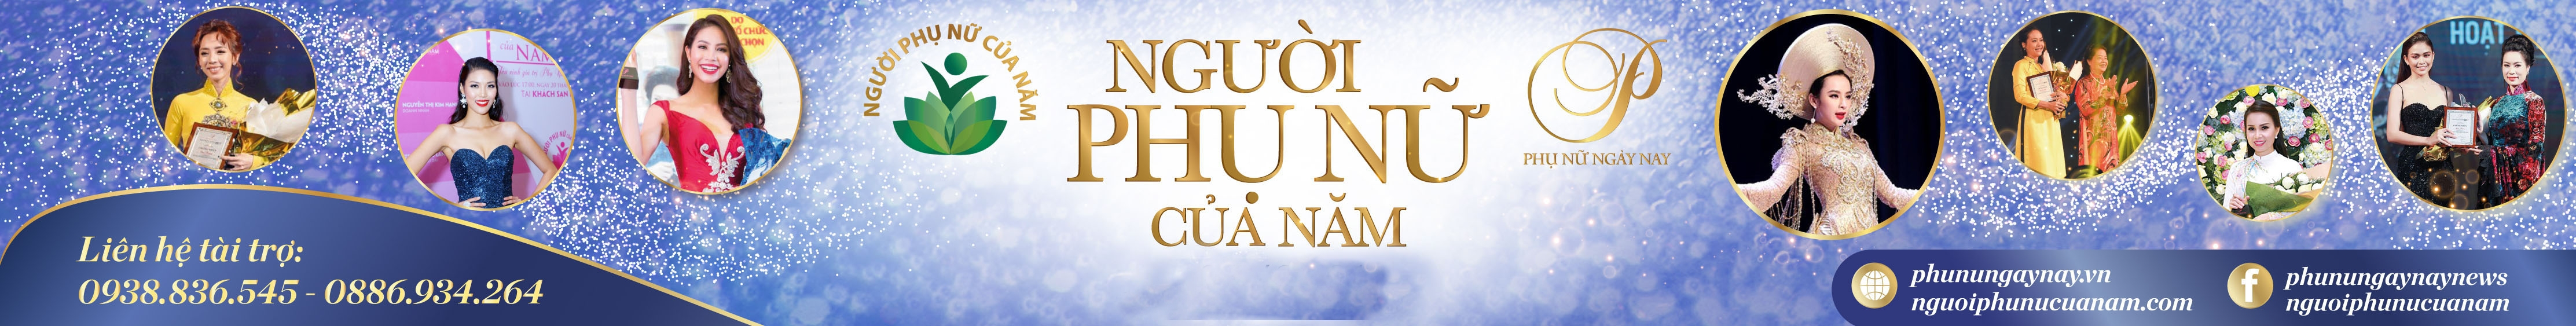 http://nguoiphunucuanam.com